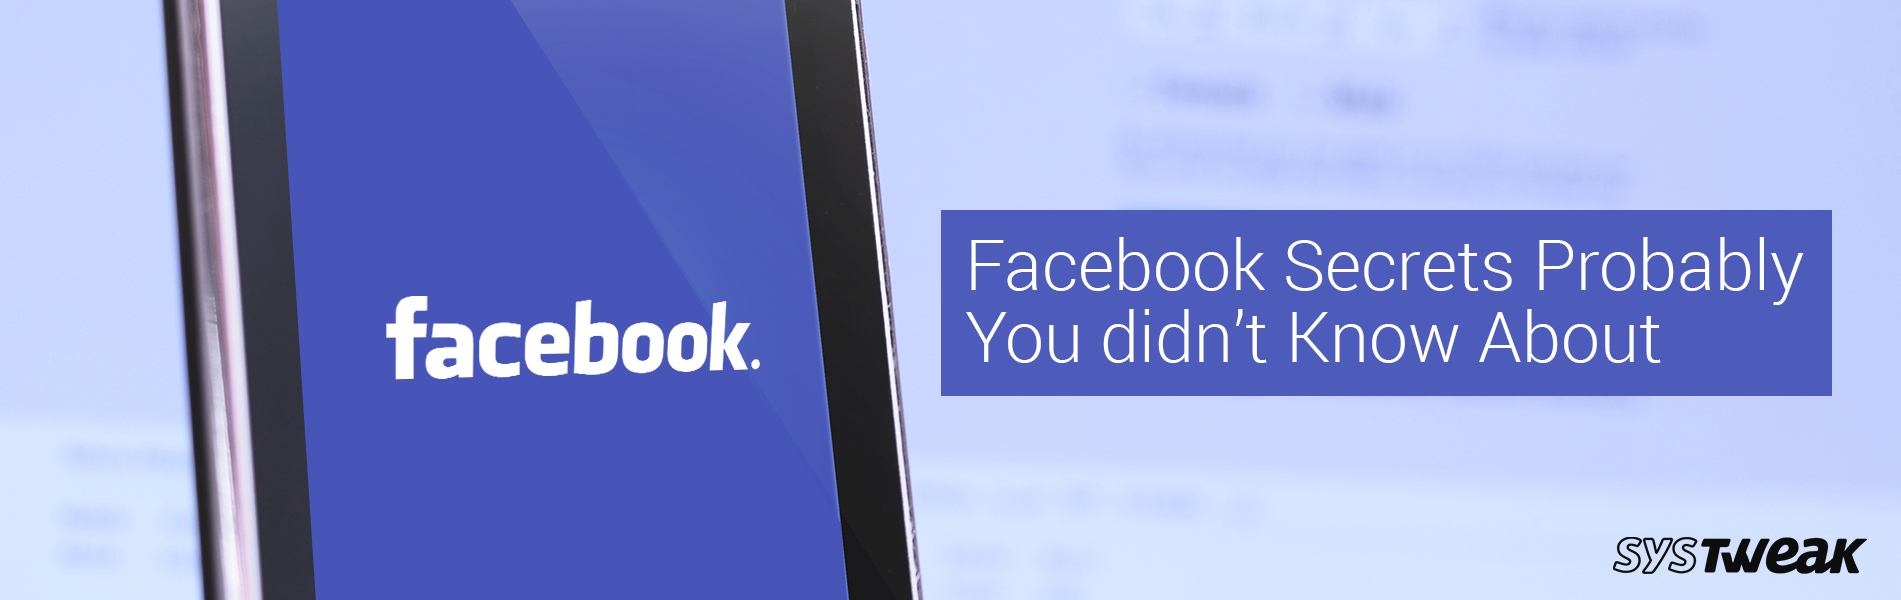 Facebook Tricks You Probably Didn't Know About